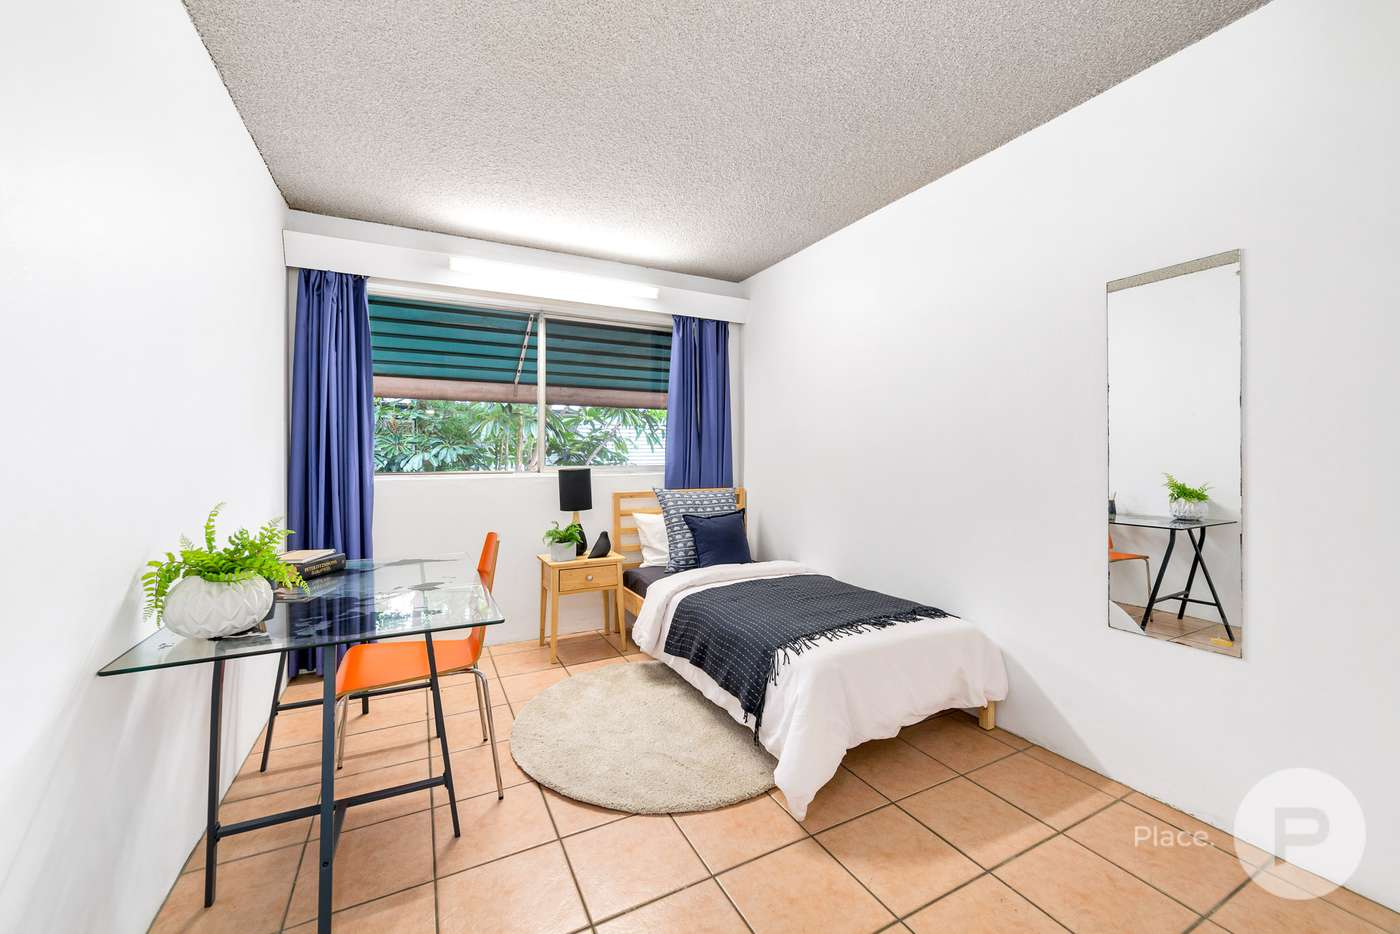 Sixth view of Homely apartment listing, 2/27 The Esplanade, St Lucia QLD 4067